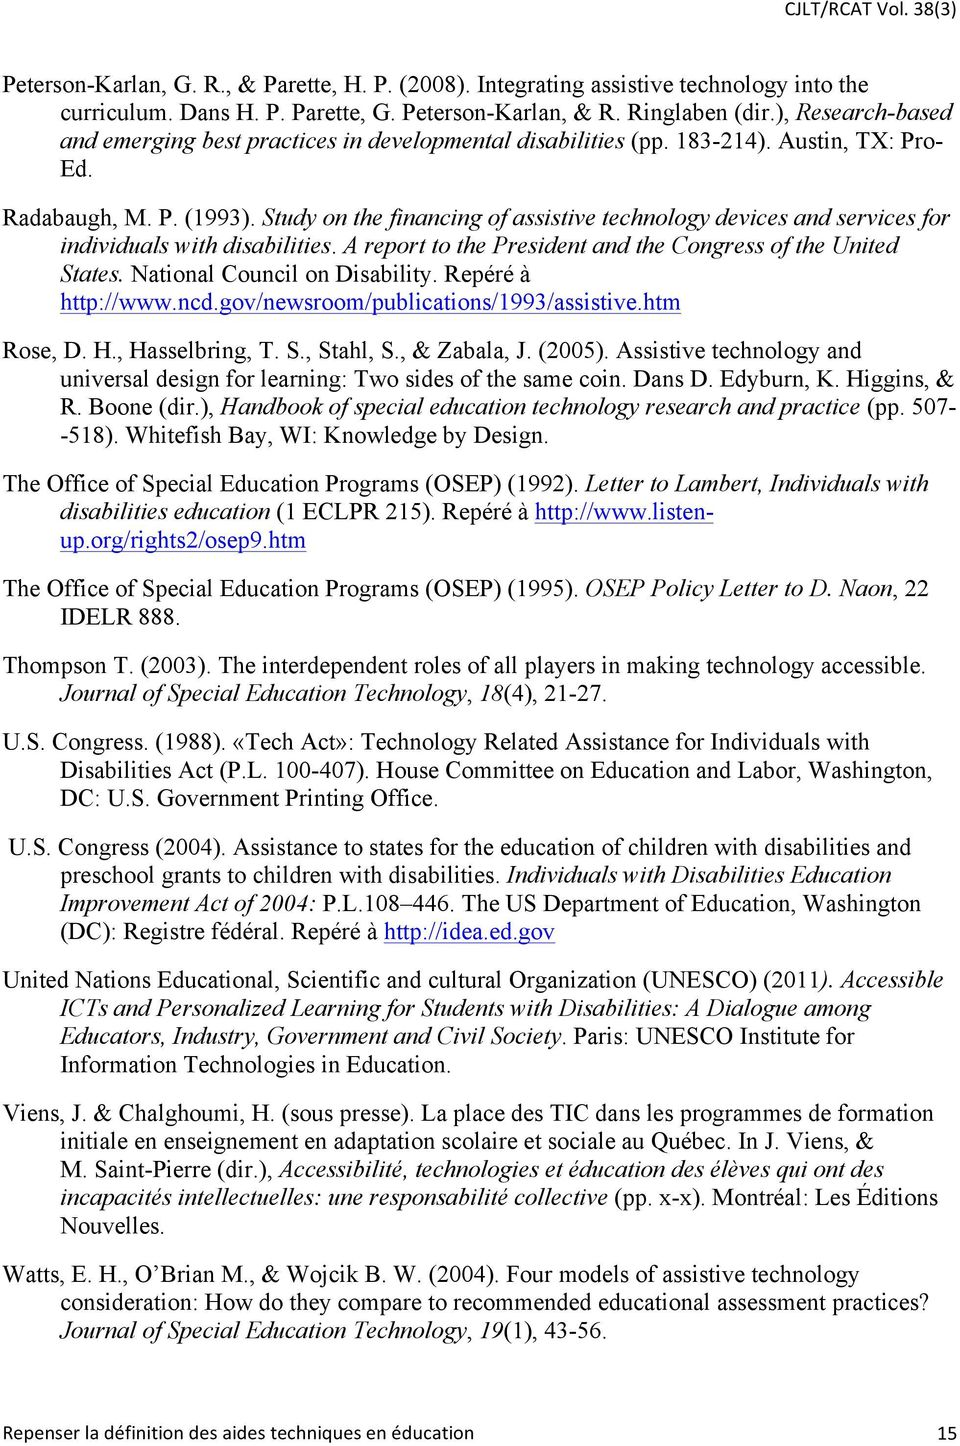 Study on the financing of assistive technology devices and services for individuals with disabilities. A report to the President and the Congress of the United States. National Council on Disability.